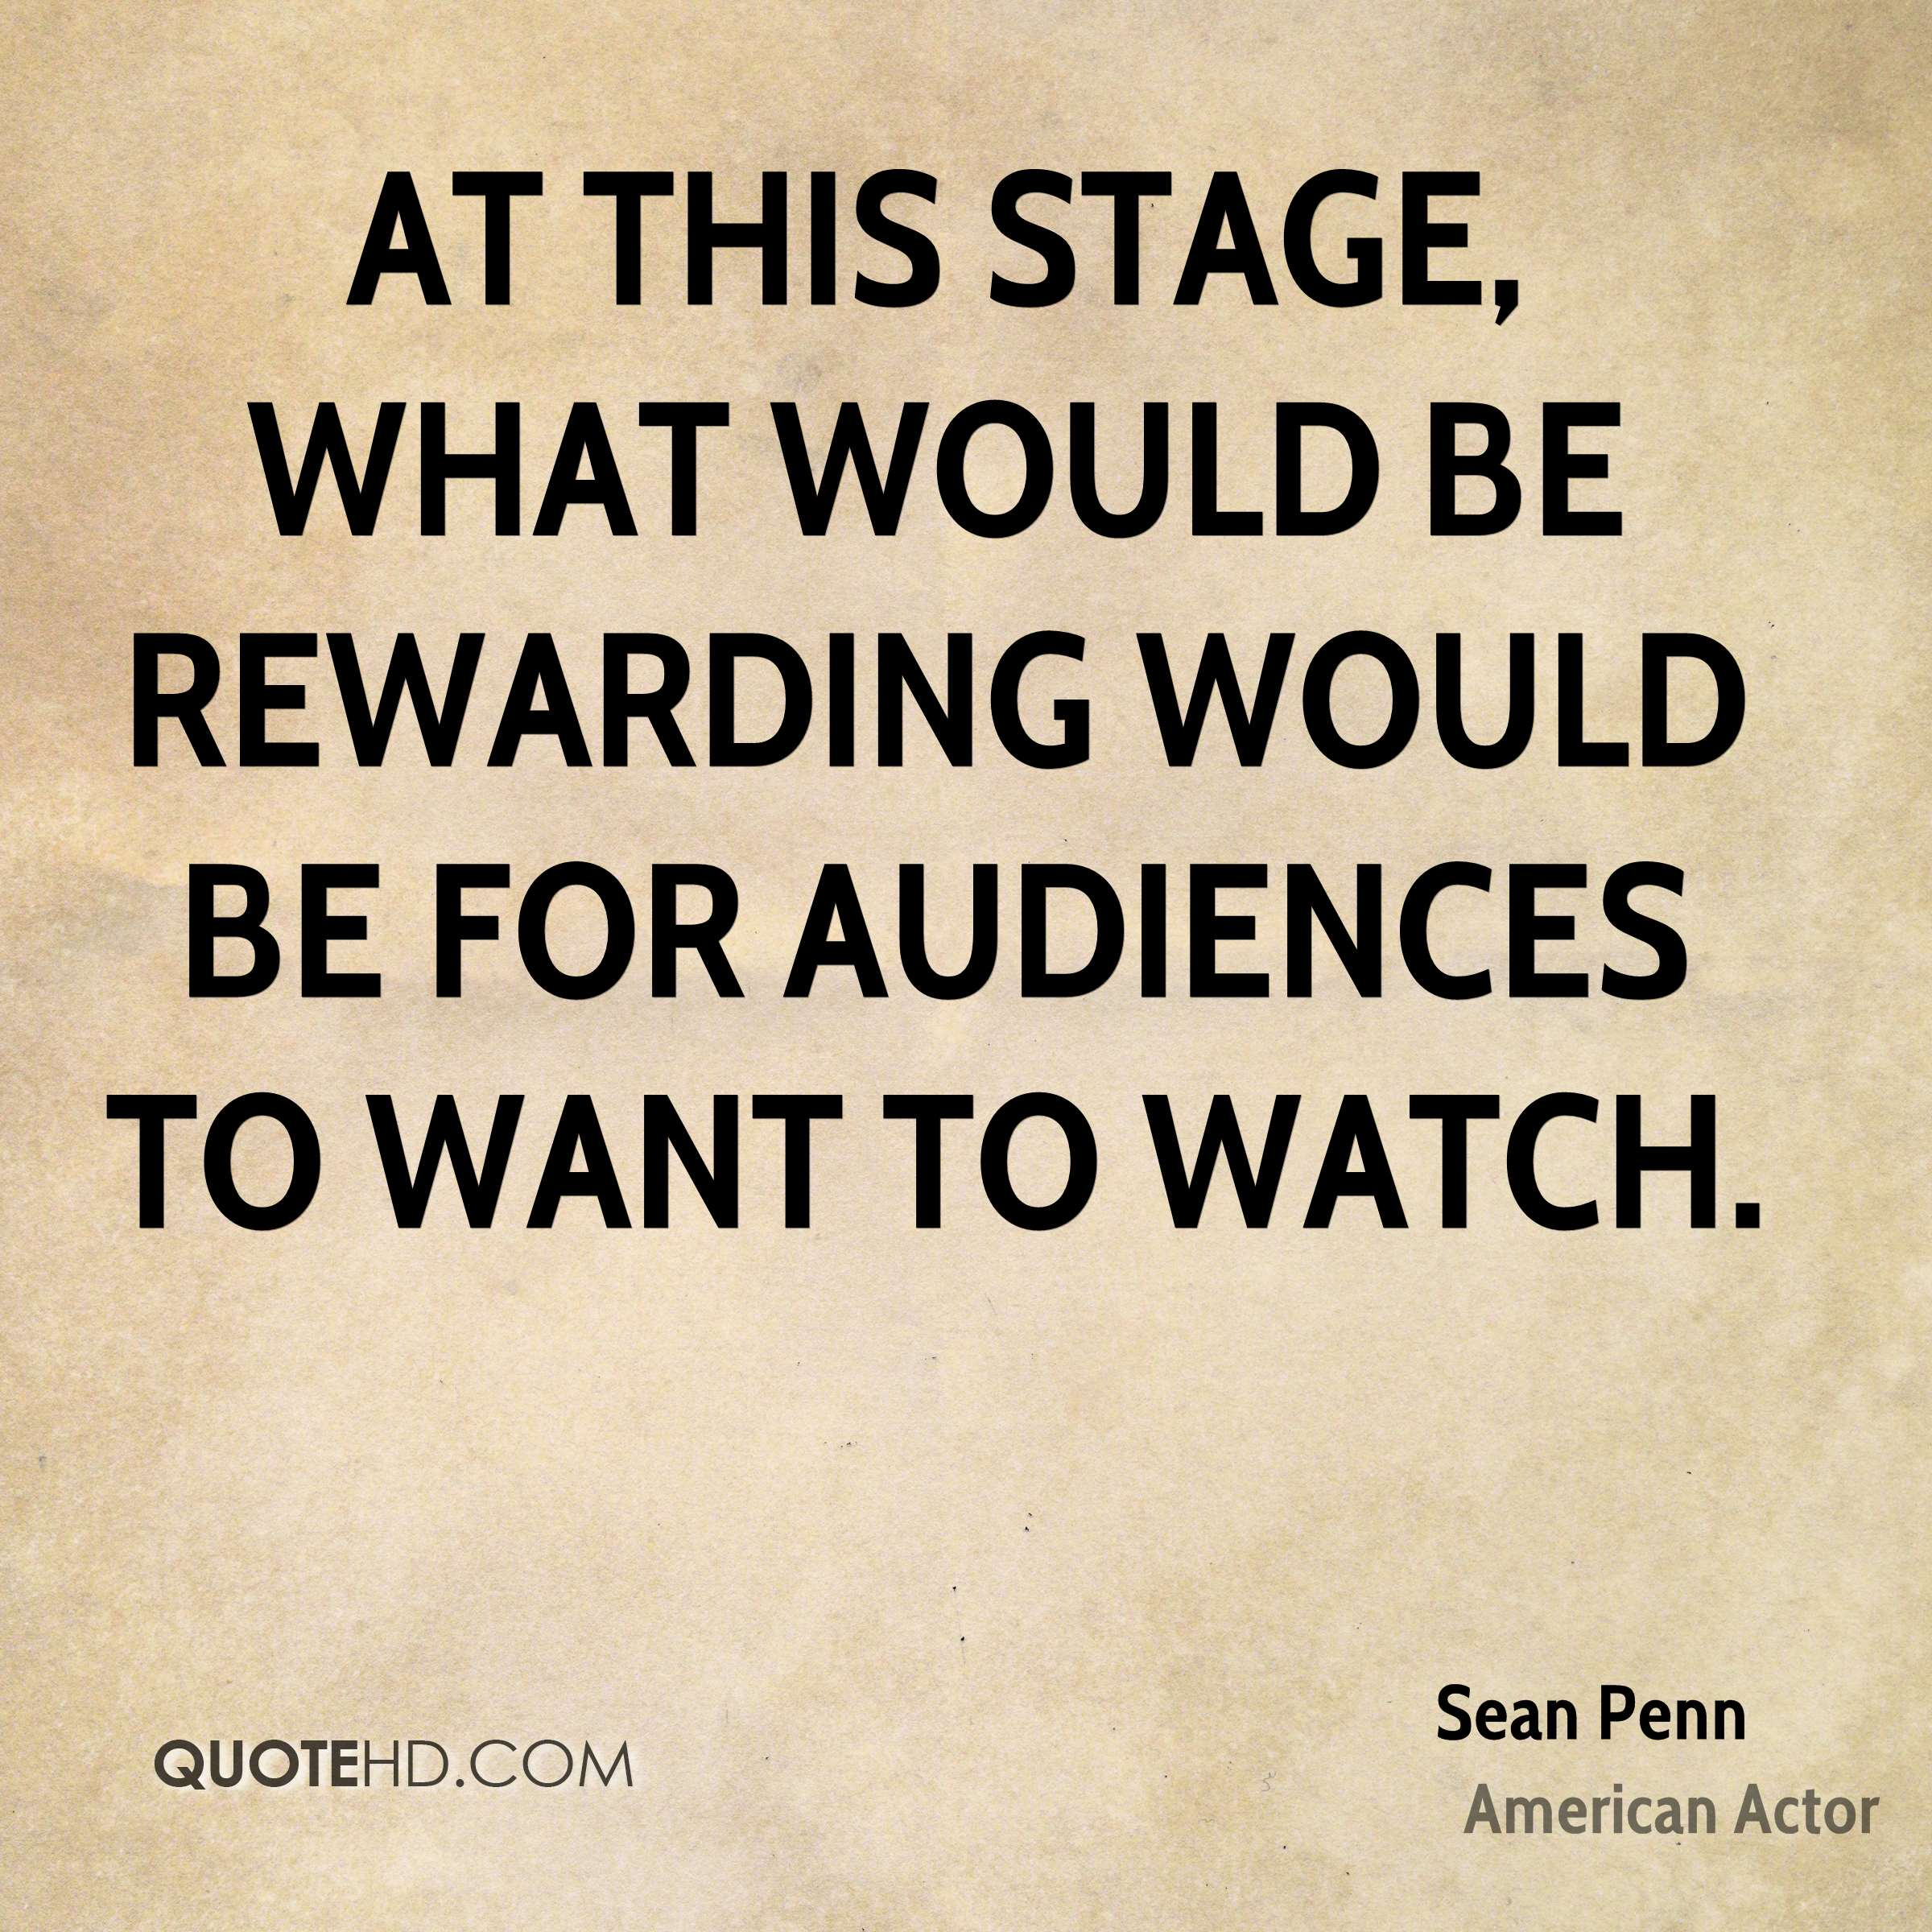 At this stage, what would be rewarding would be for audiences to want to watch.